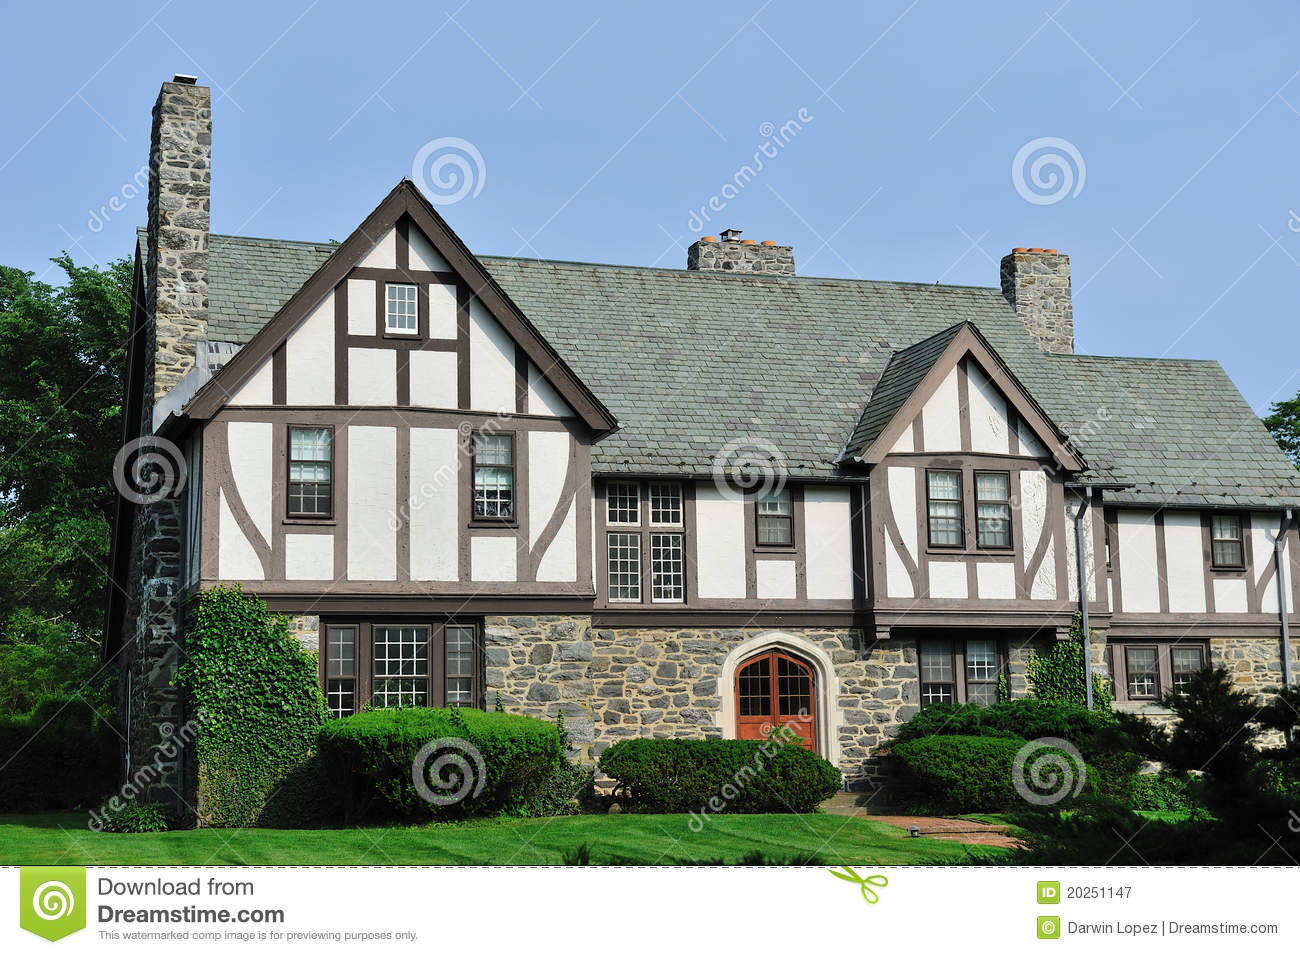 Ruang Keluarga Crscbd090321ltv together with Royalty Free Stock Photography English Tudor House Exterior Image20251147 moreover Beautiful Modern Villa Design 2015 3d furthermore 104 in addition Aircraft Hangar Home Plans. on 3d home modern design small houses